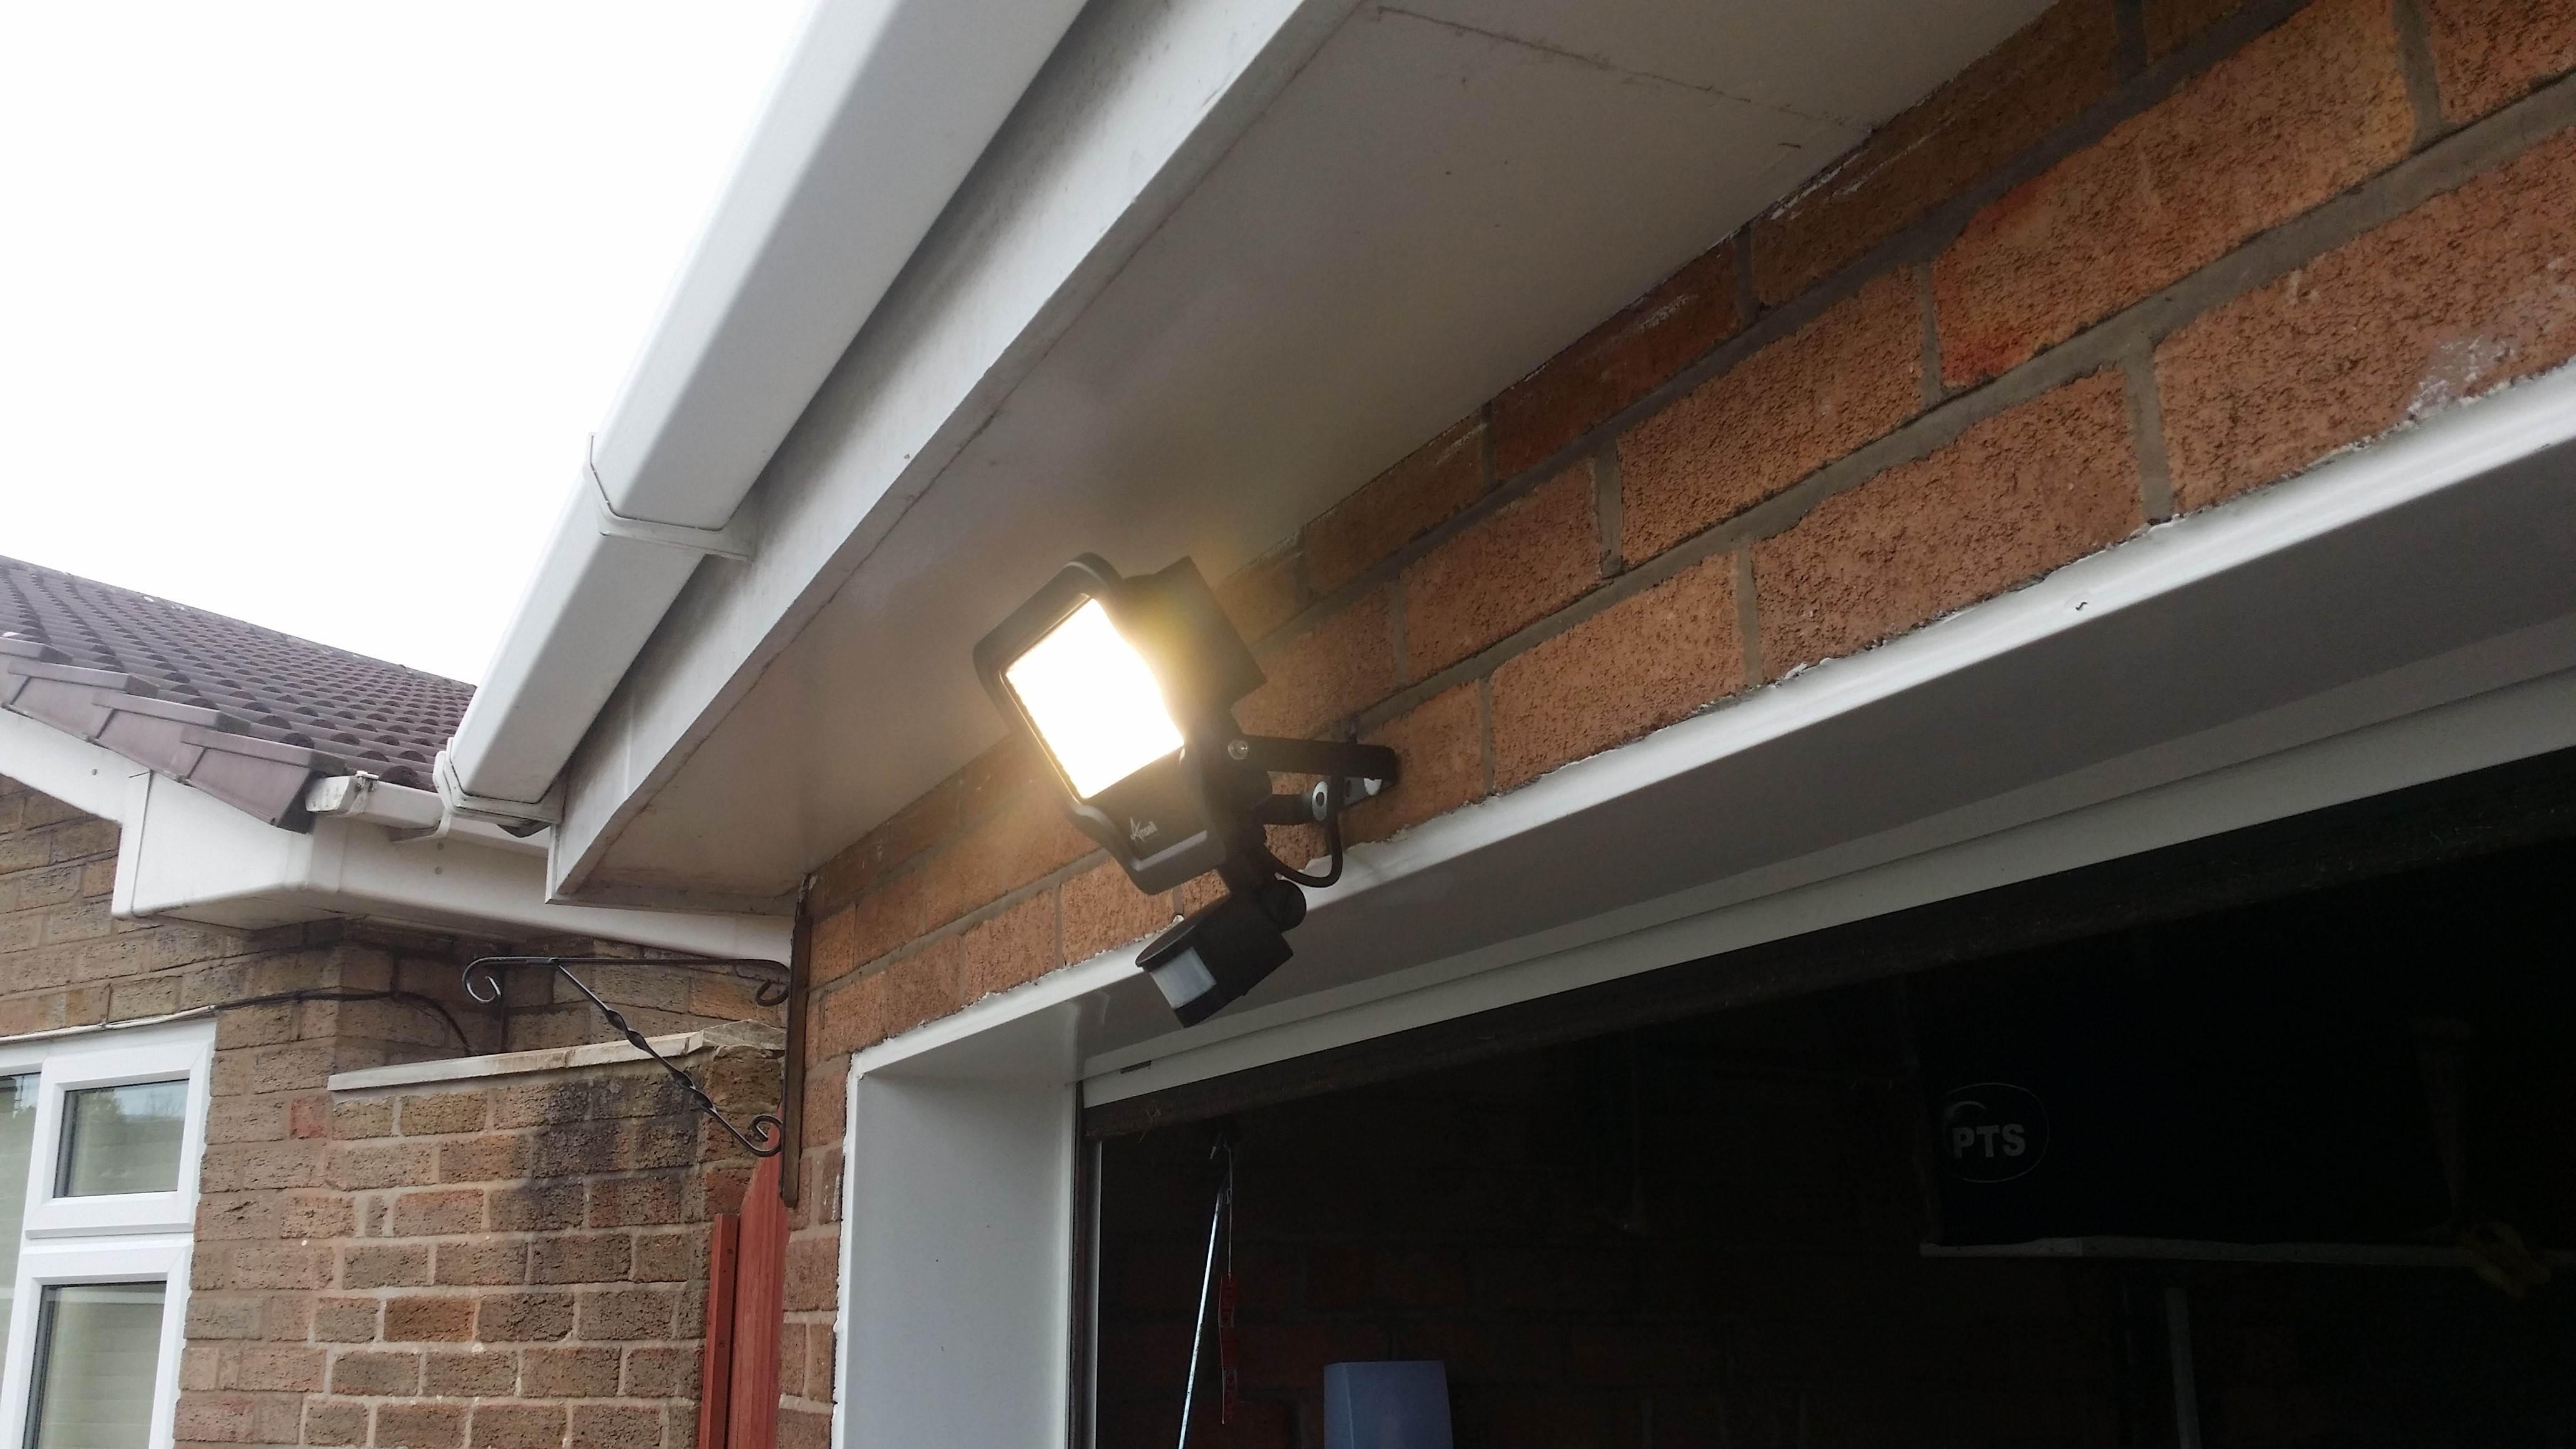 Work completed by RHIAES on a outdoor light